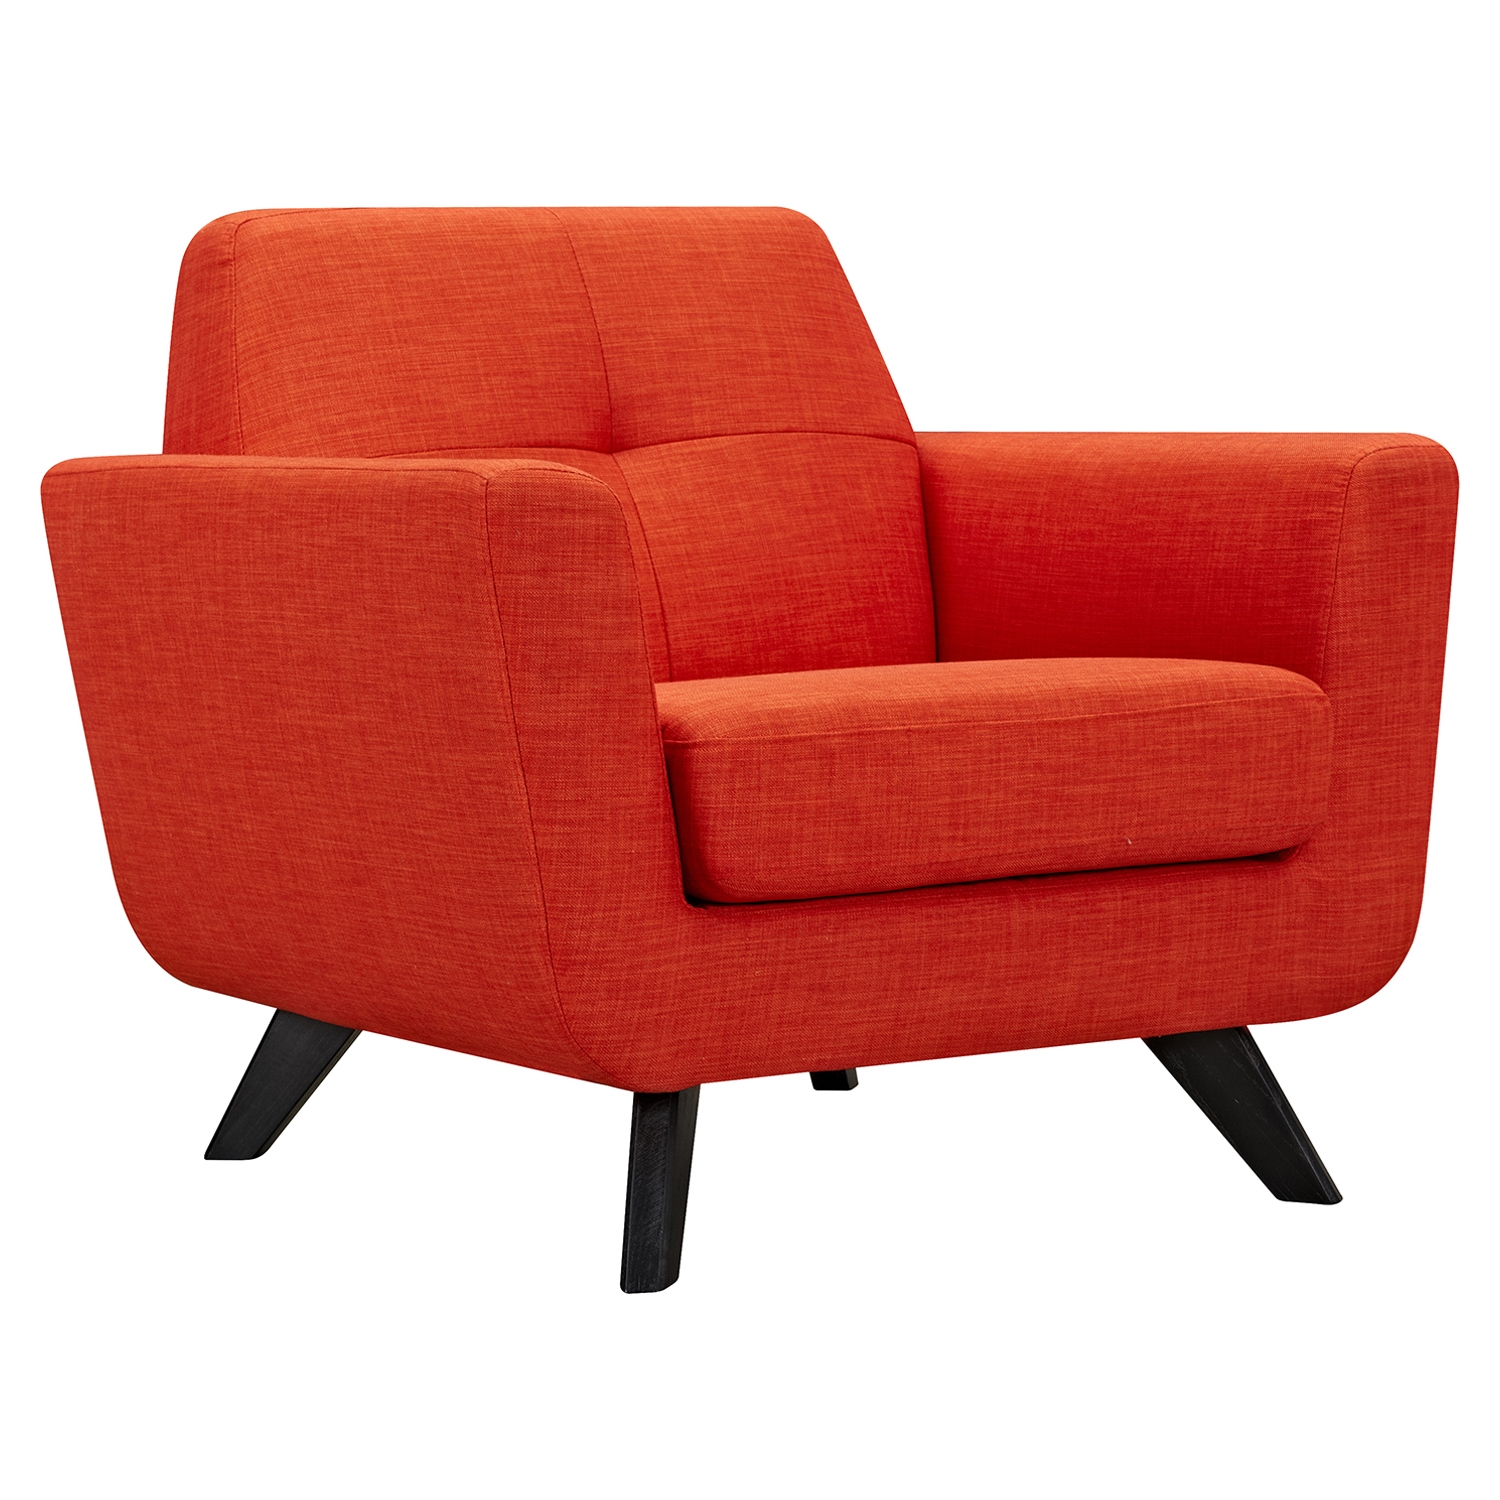 Dania Tufted Upholstery Armchair Retro Orange Dcg Stores